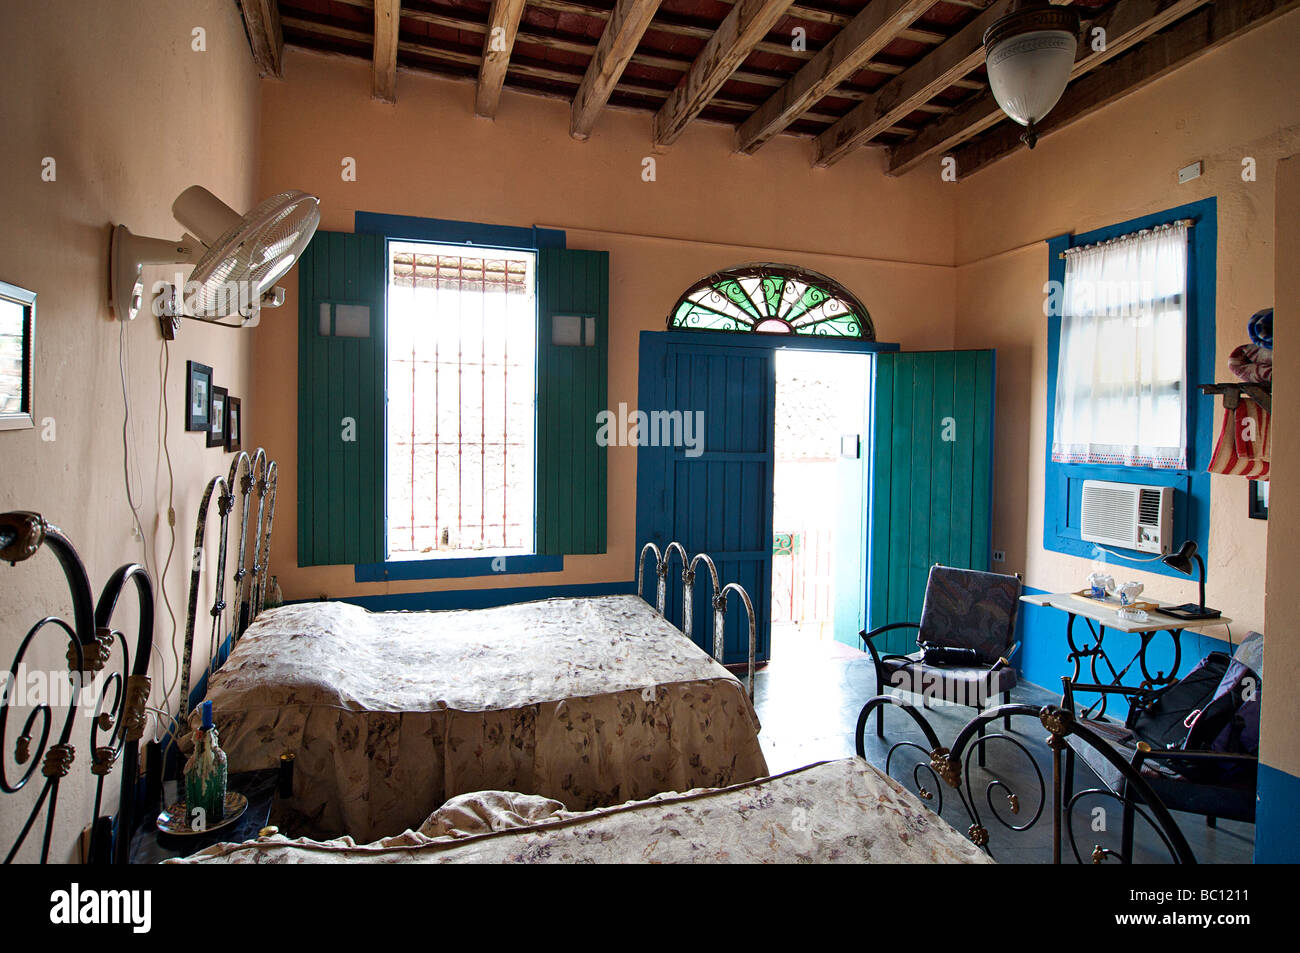 Interior of a casa particular, Cuba. Julio Bastida's 1826 home. - Stock Image